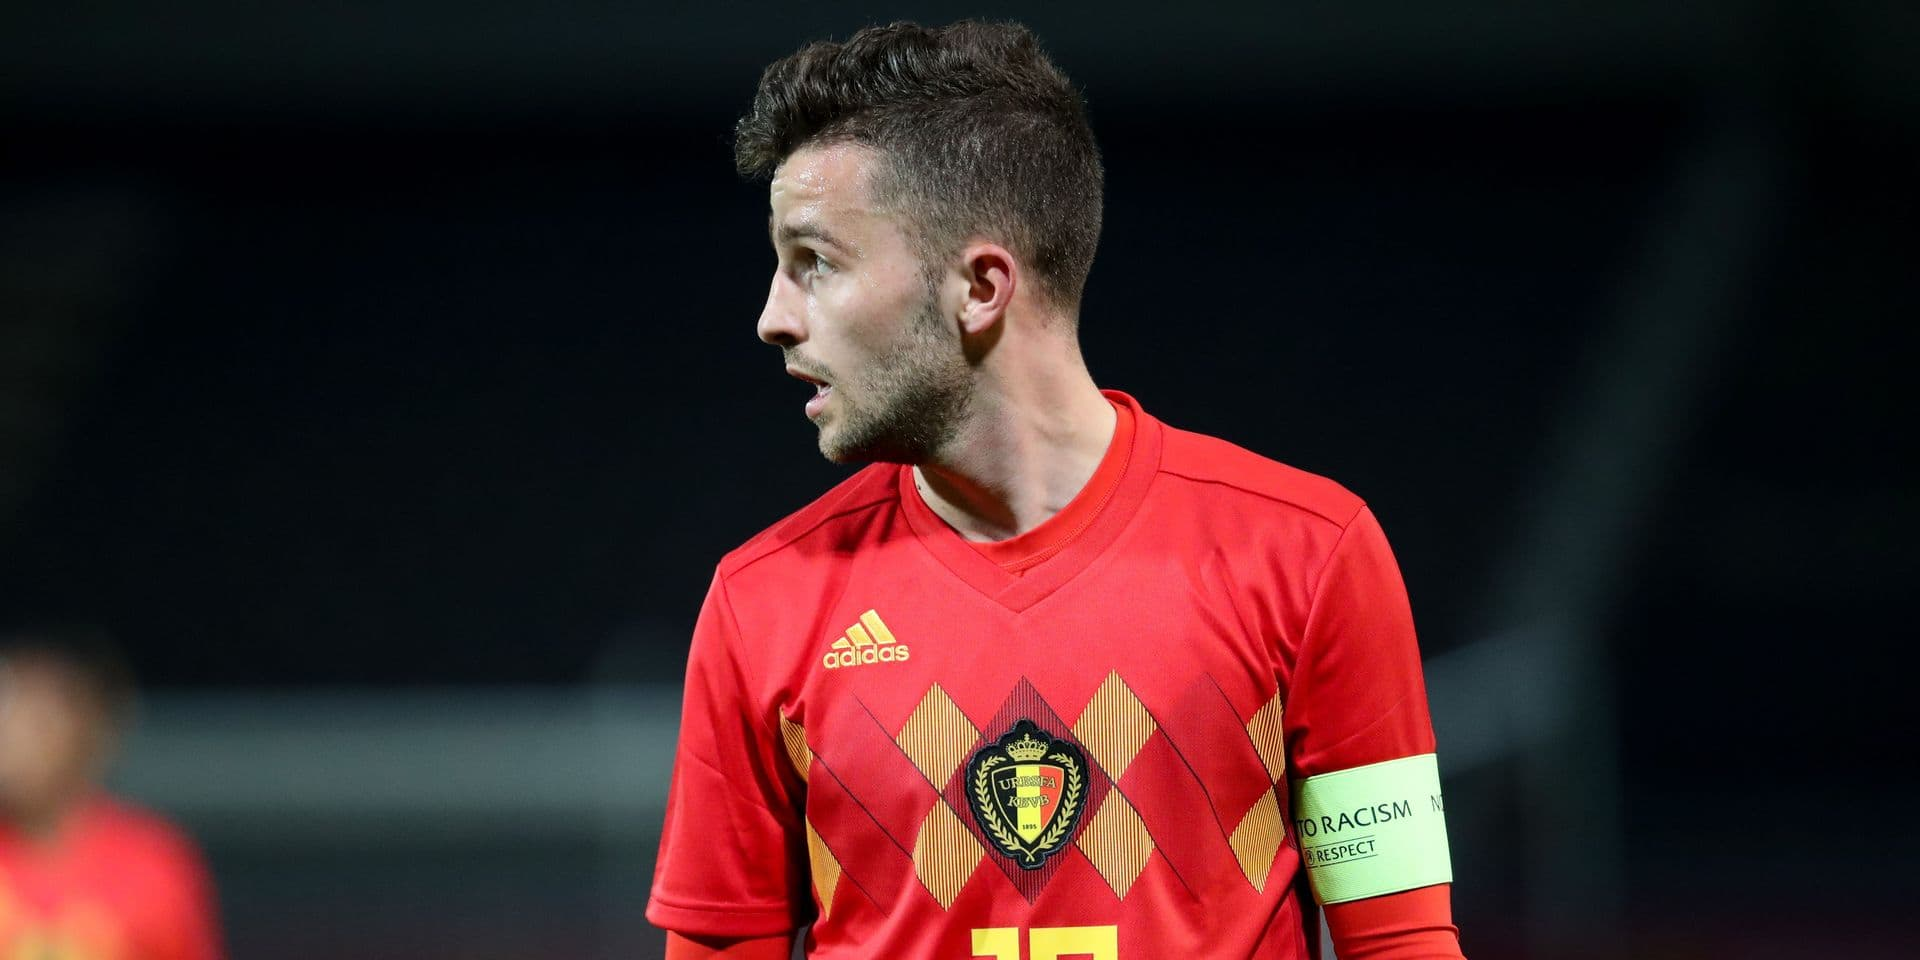 Belgium's Siebe Schrijvers pictured during the U21 Red Devils vs Hungary, a qualification match for the 2019 European Championships U21, in Heverlee, Monday 26 March 2018. BELGA PHOTO VIRGINIE LEFOUR